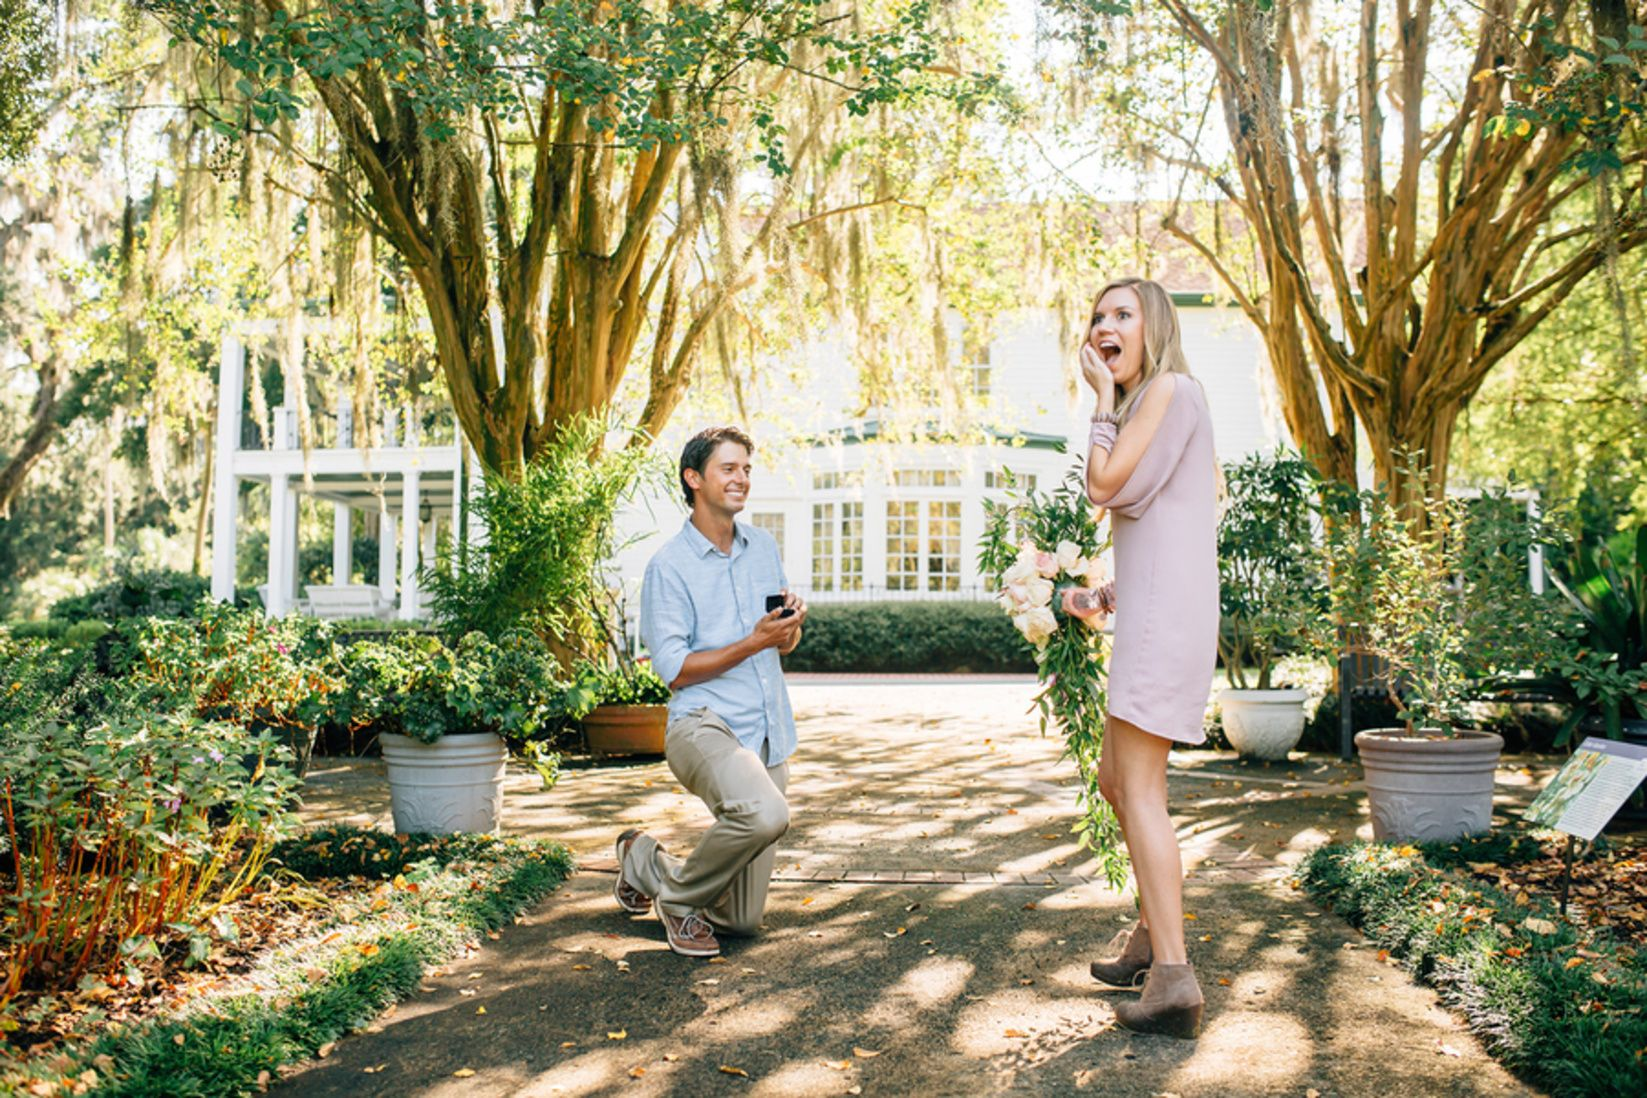 Come check out one of our favorite proposals on our site today! The thought and the process behind this proposal is by far one of the best we have seen! Captured by @passiophotography . . . . #proposalstory #engaged #surpriseproposal #itstartedwithyes #isaidyes #engaged #proposal #marriageproposal #engagement #bridetobe #engagementring #diamondring #diamond #proposalinspiration #marriageproposalideas #bride #surpriseproposal #flowers #willyoumarryme #heaskedisaidyes #heasked #ido